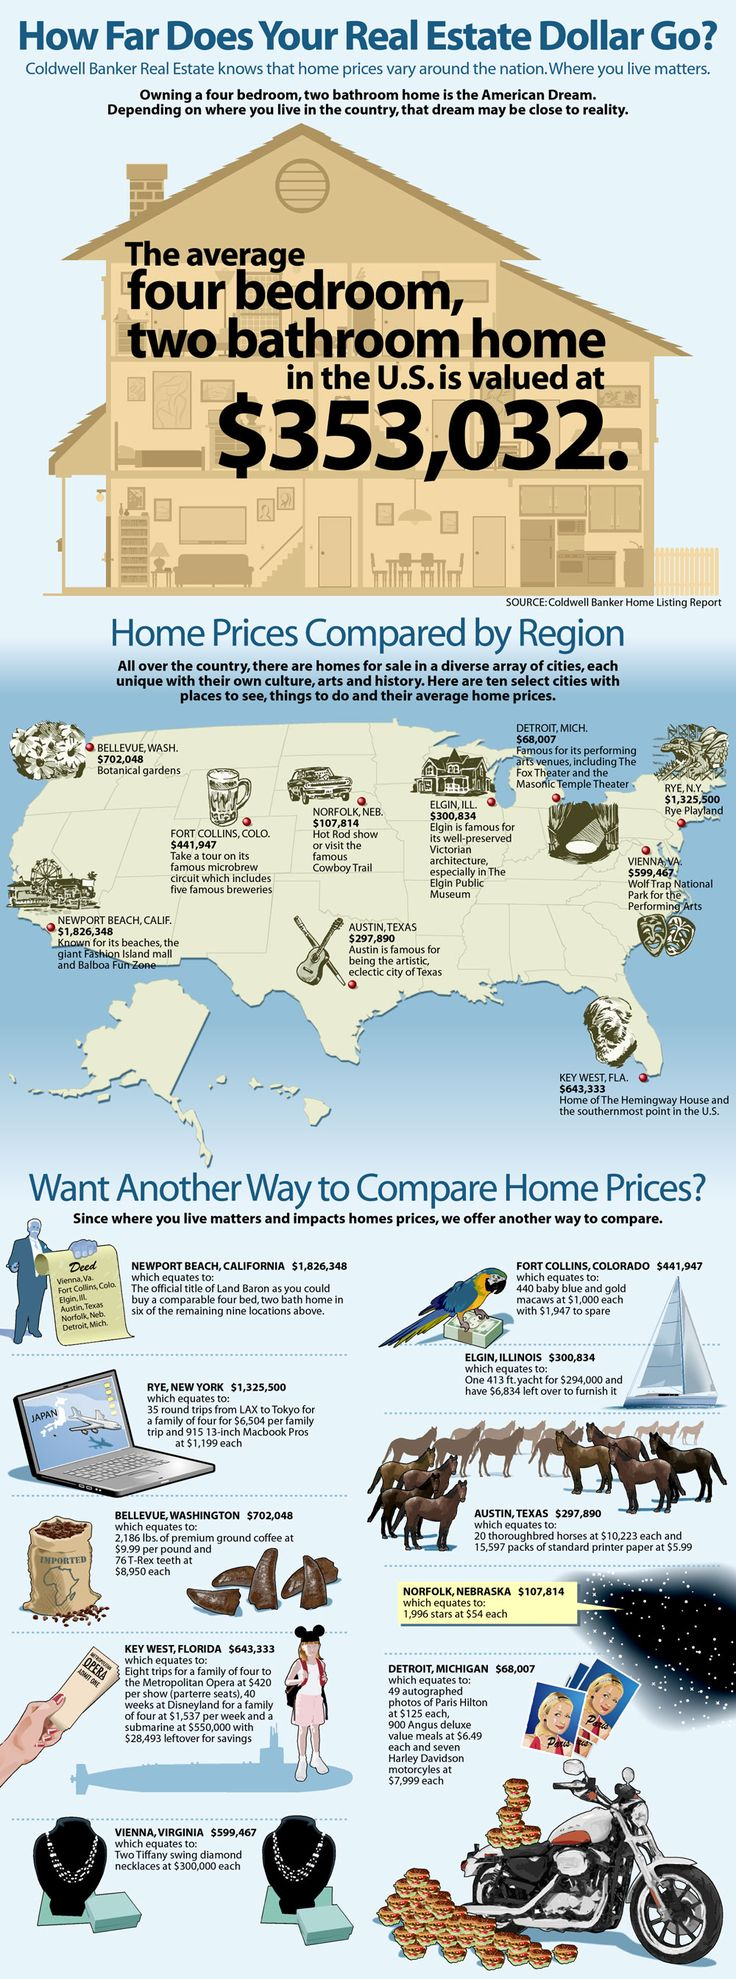 How Far Does Your Real Estate Dollar Go Across the USA?